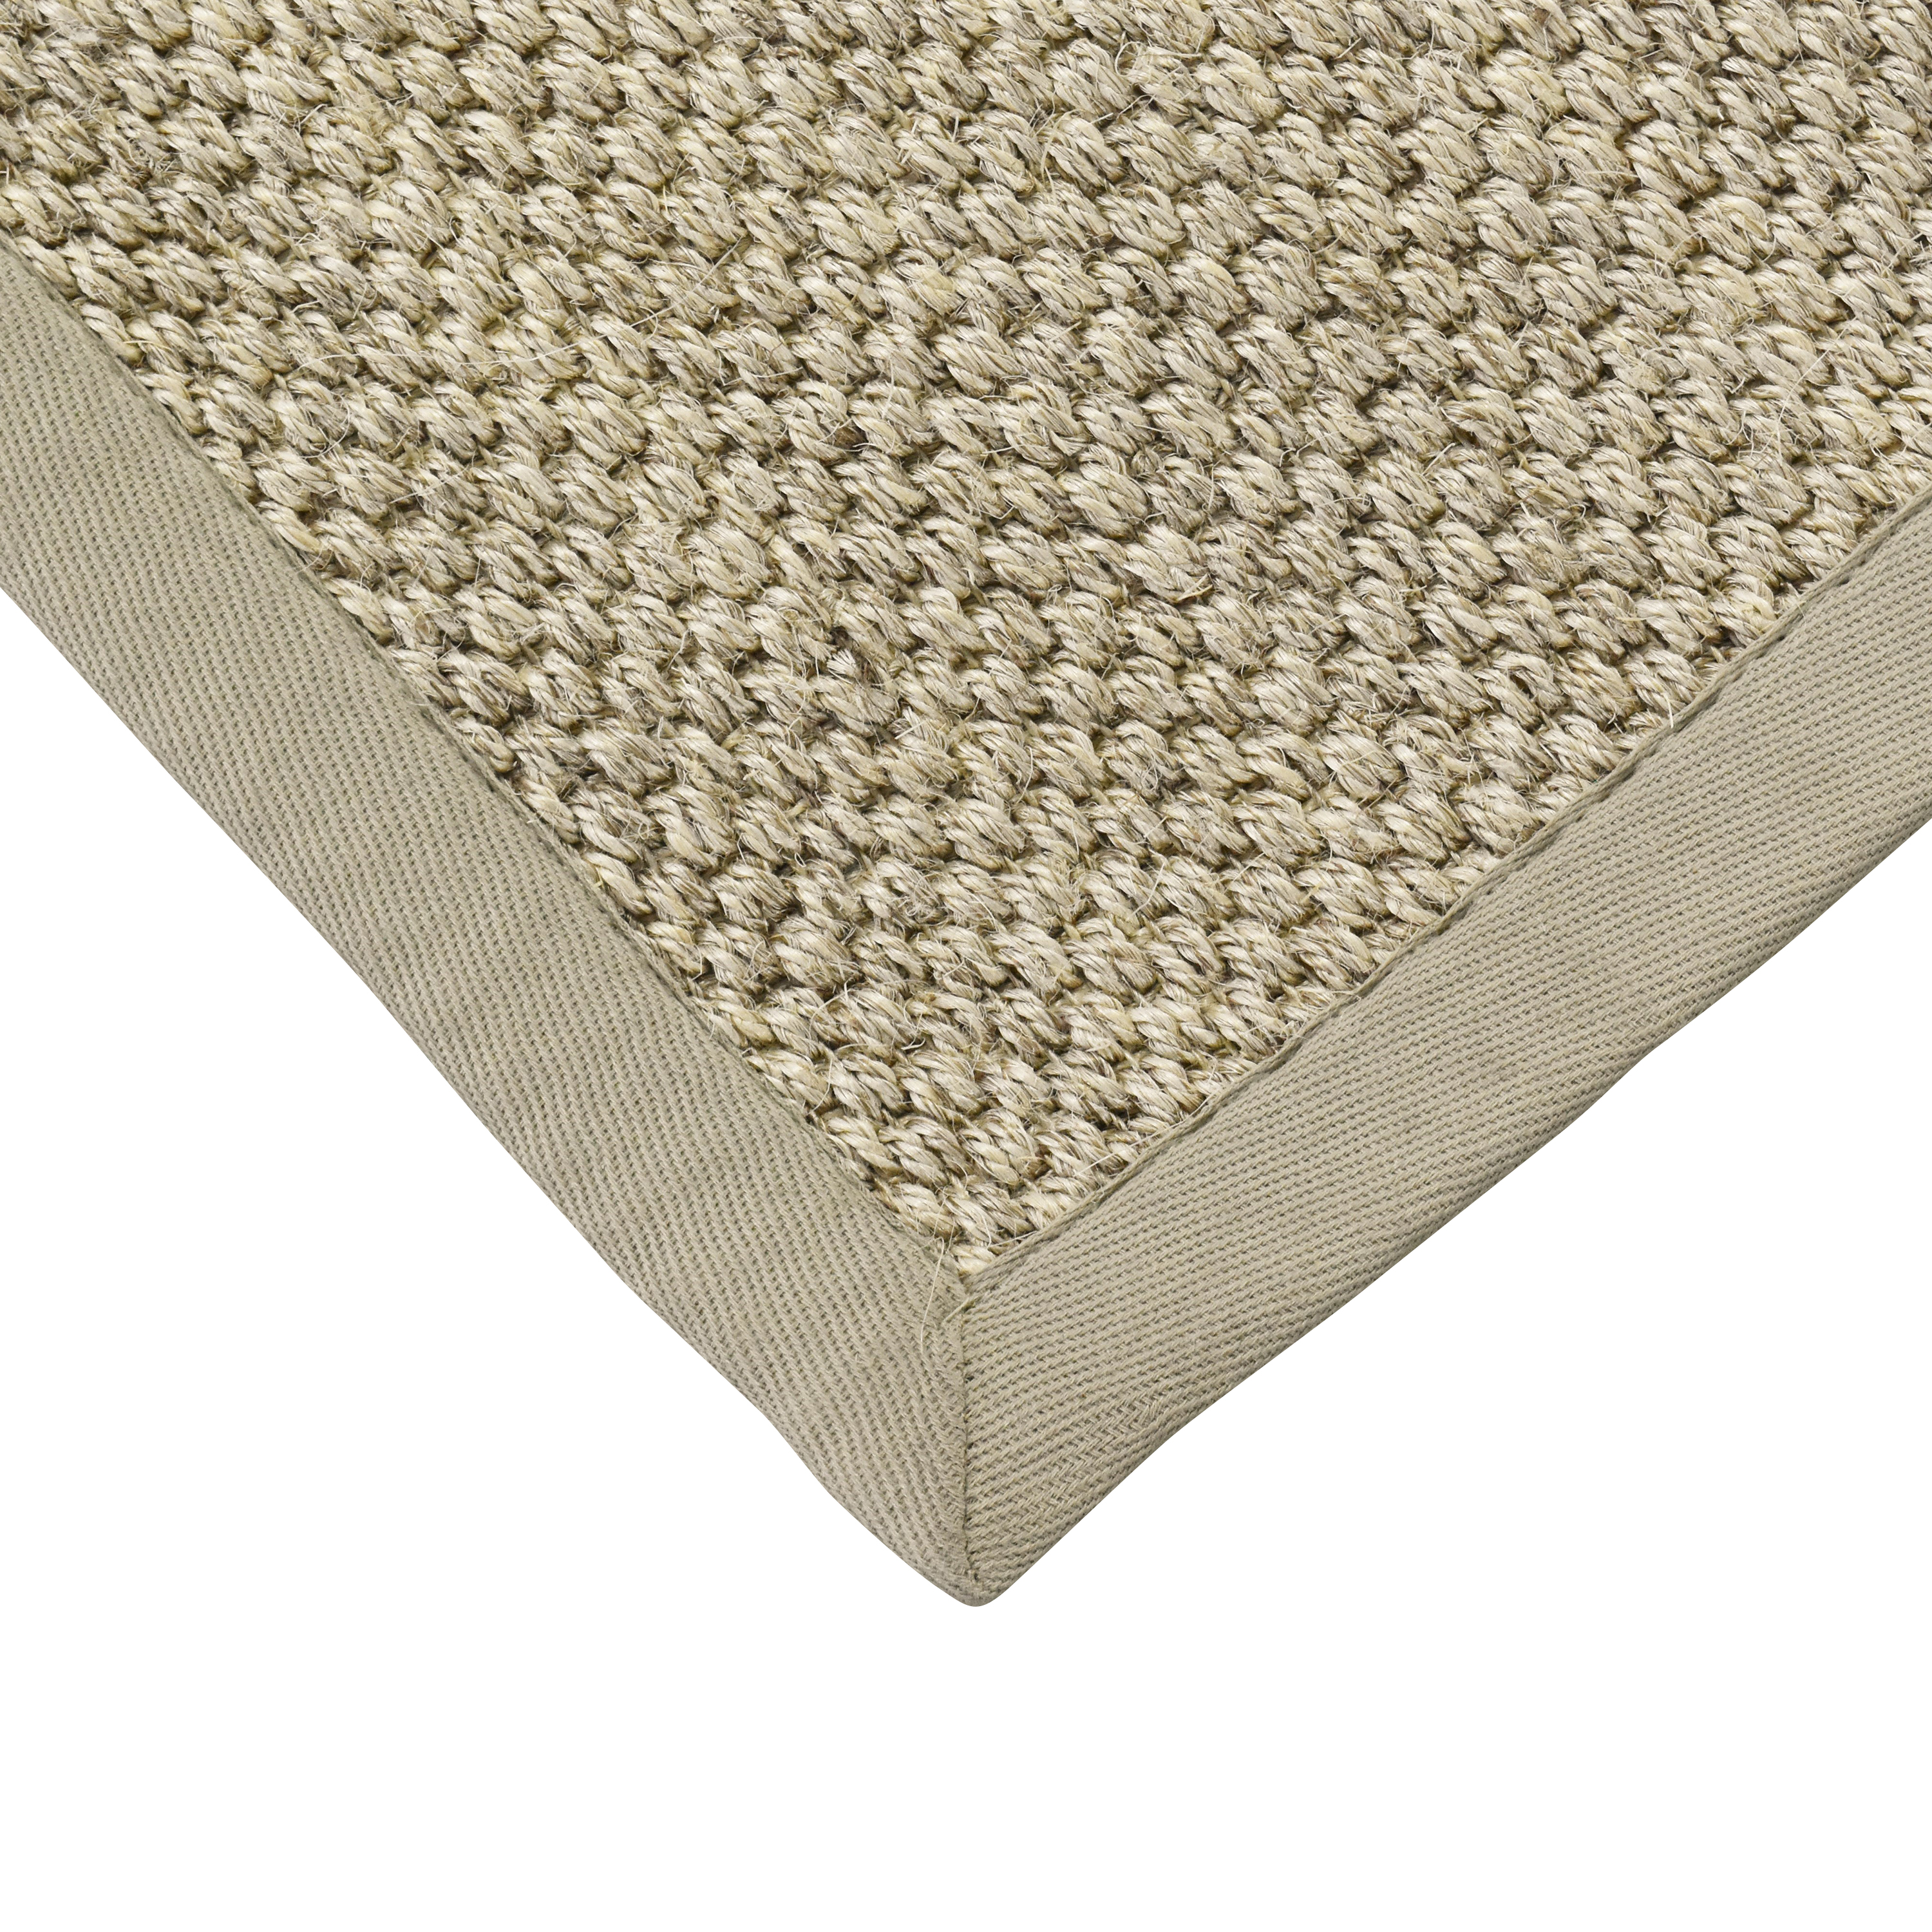 Neutral Area Rug / Rugs